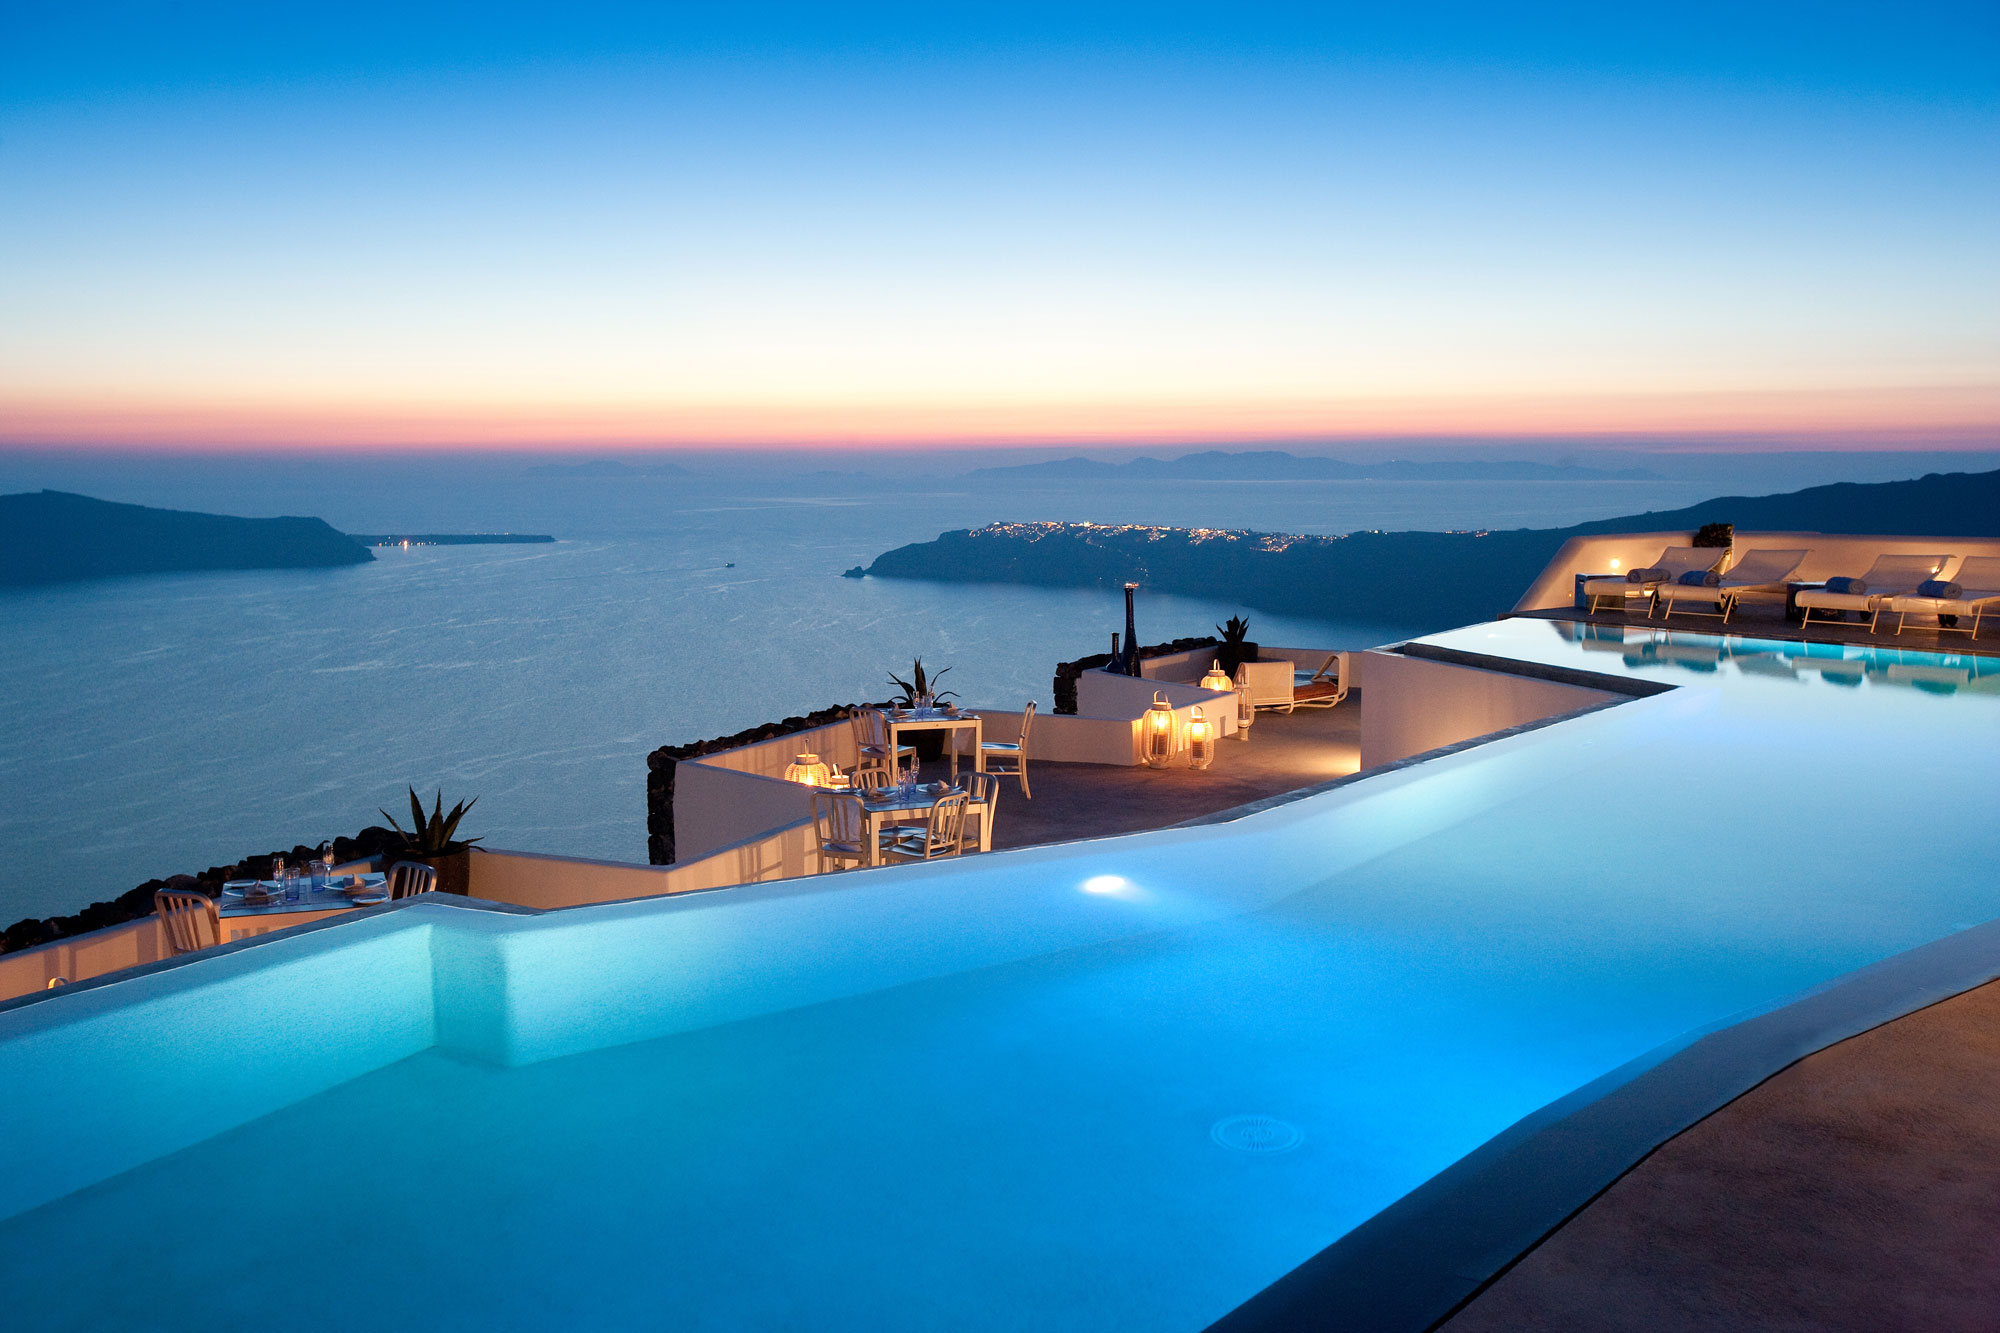 Colorado grace santorini hotel by divercity and mplusm architects